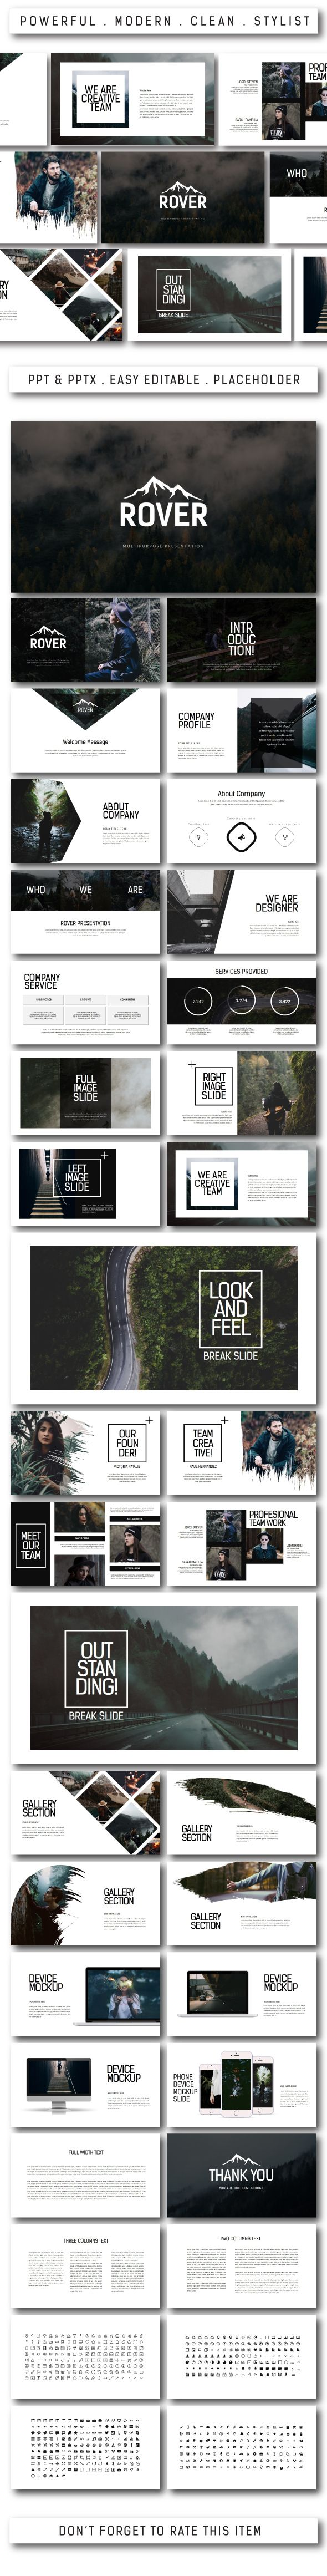 Rover Multipurpose Powerpoint Template | Presentation templates ...